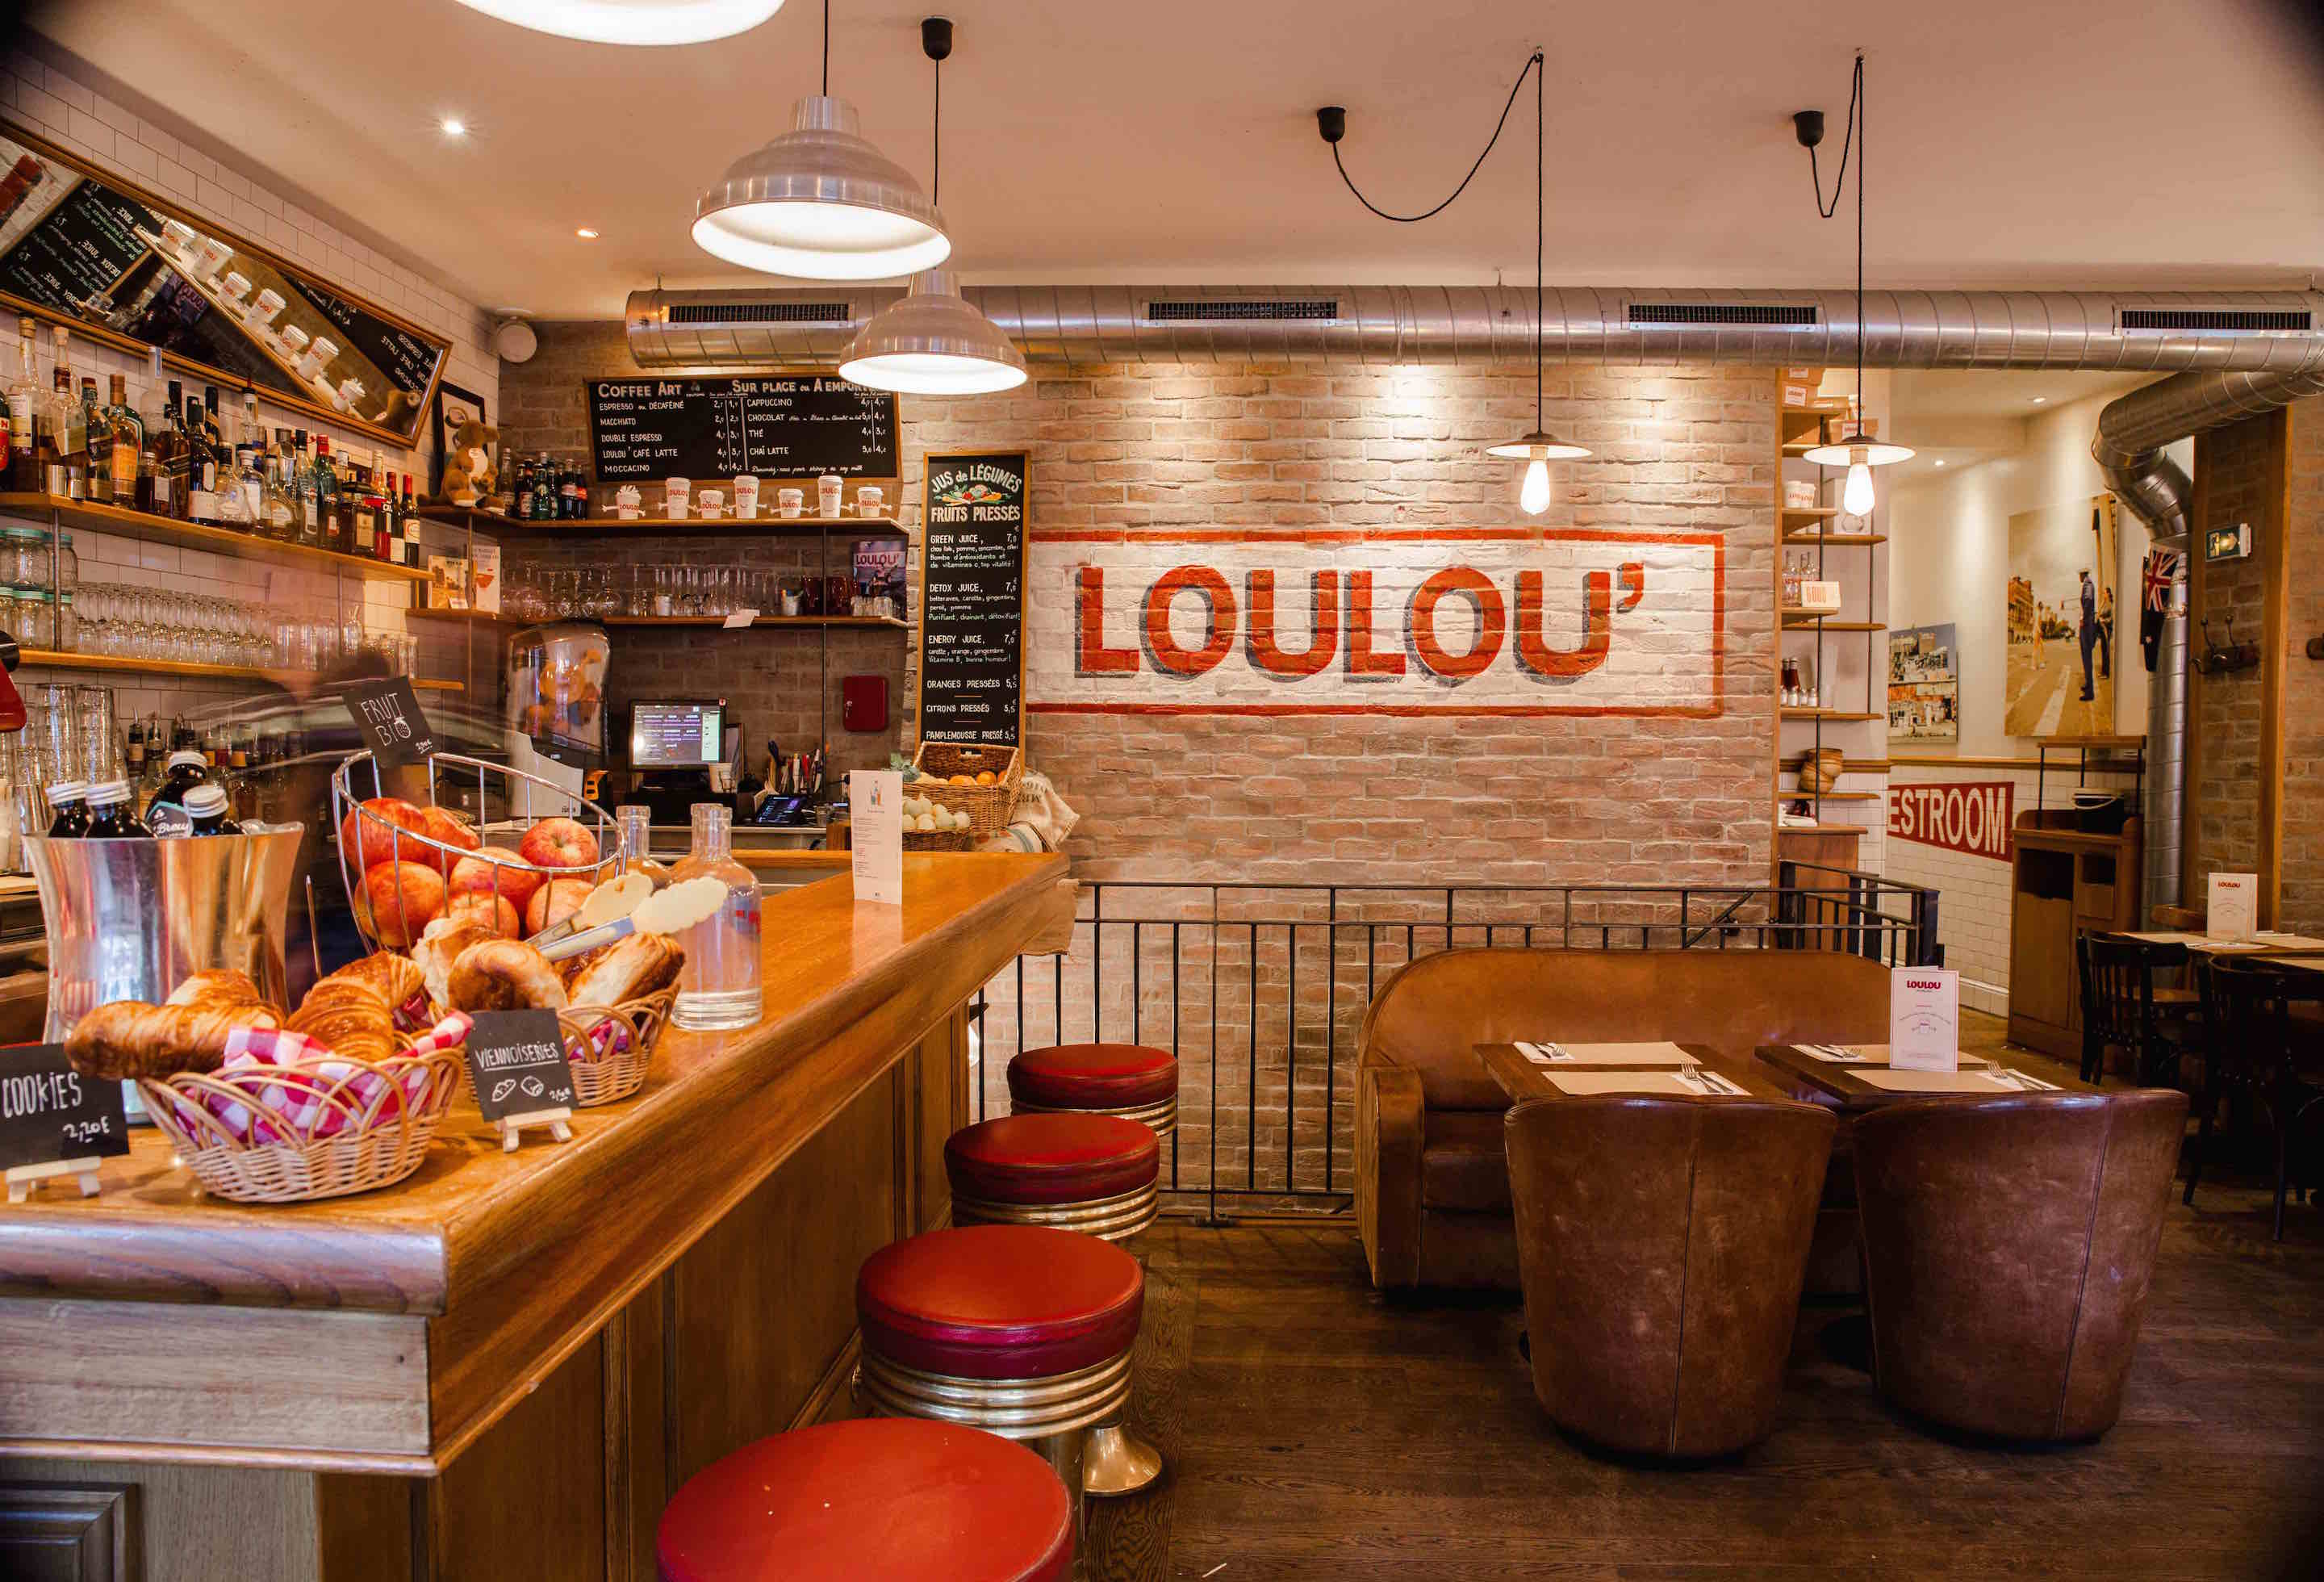 loulou interior